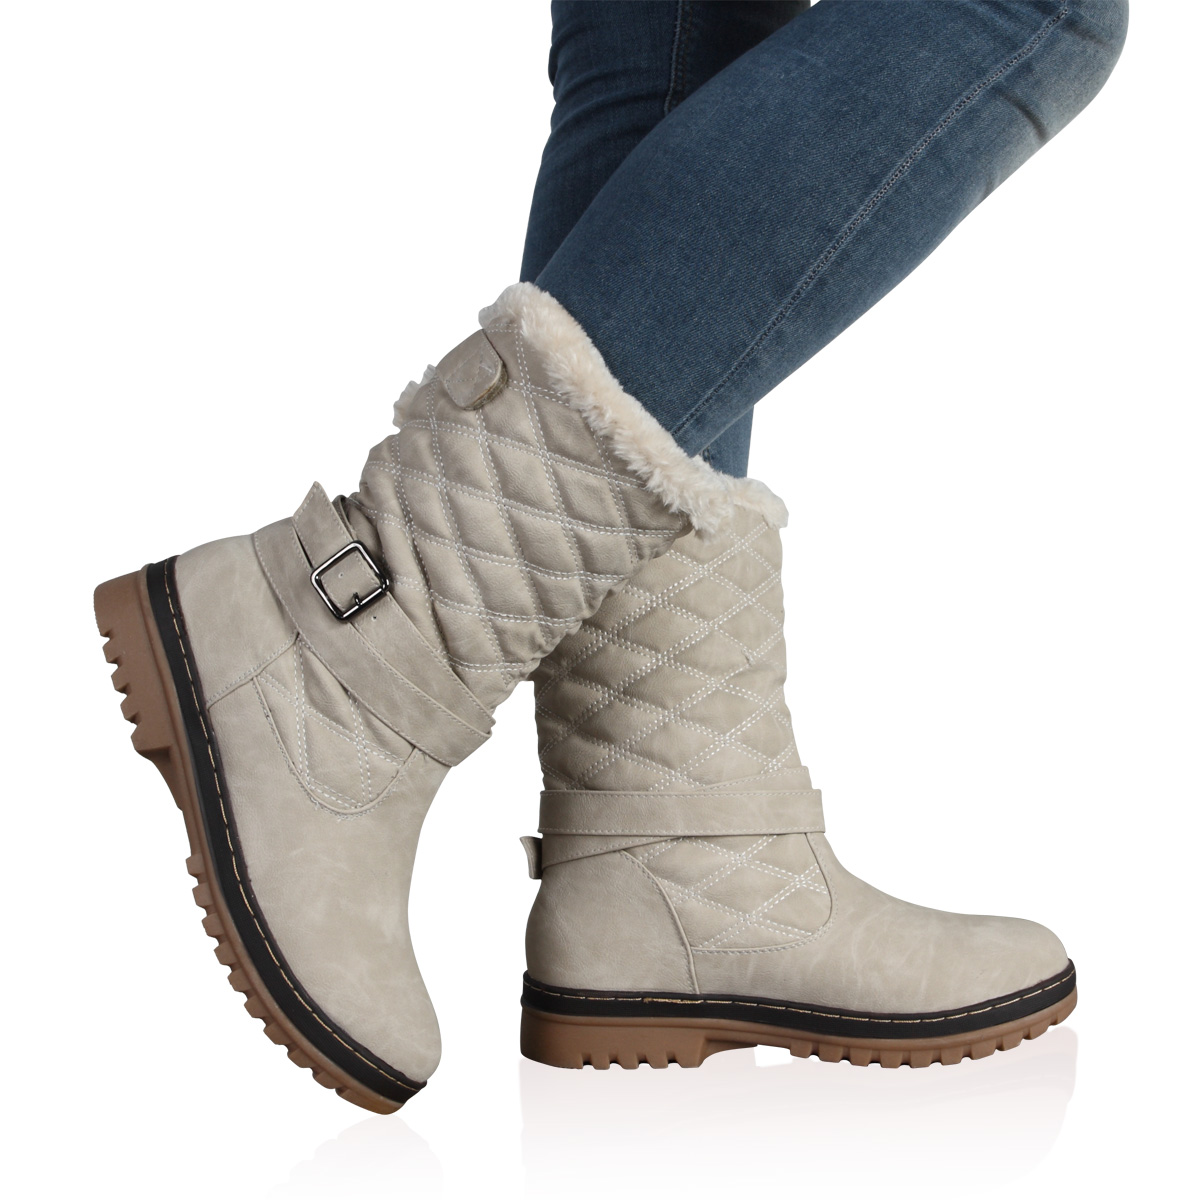 New Ladies Quilted Womens Faux Fur Grip Sole Winter Snow Boots ...